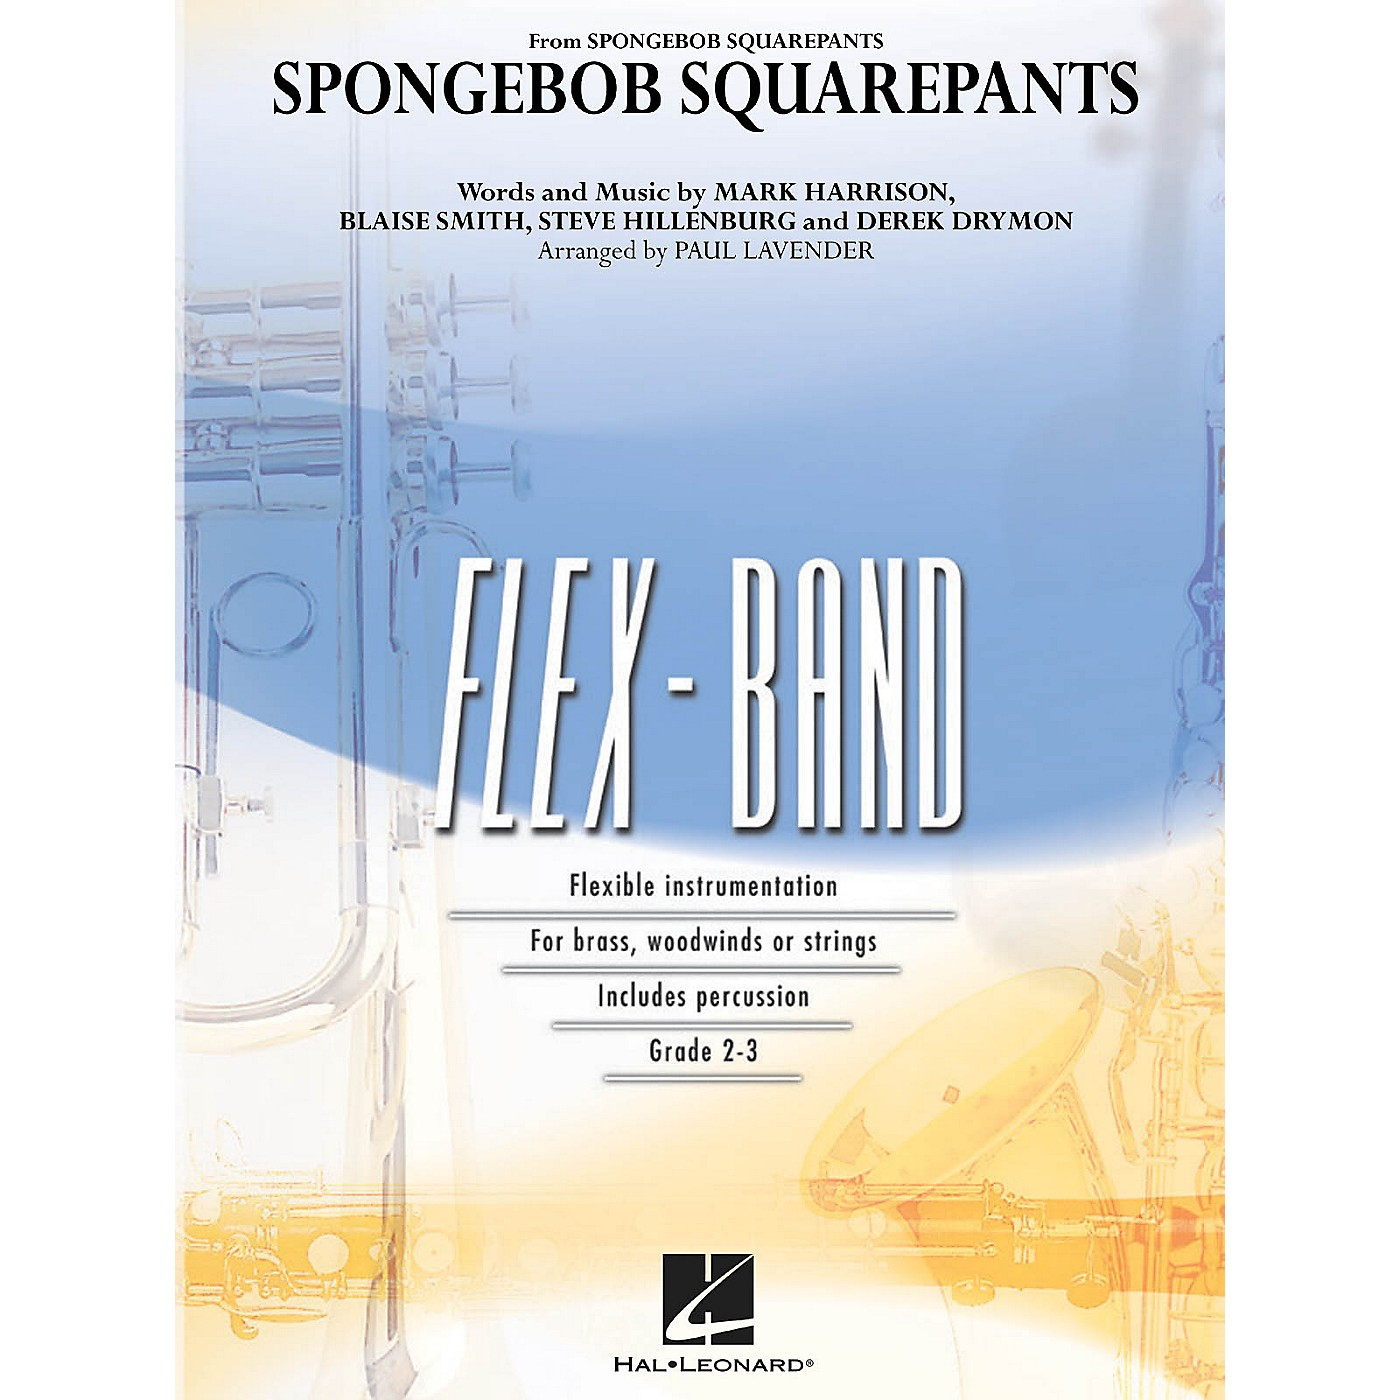 Hal Leonard SpongeBob SquarePants Concert Band Level 2-3 Arranged by Paul Lavender thumbnail